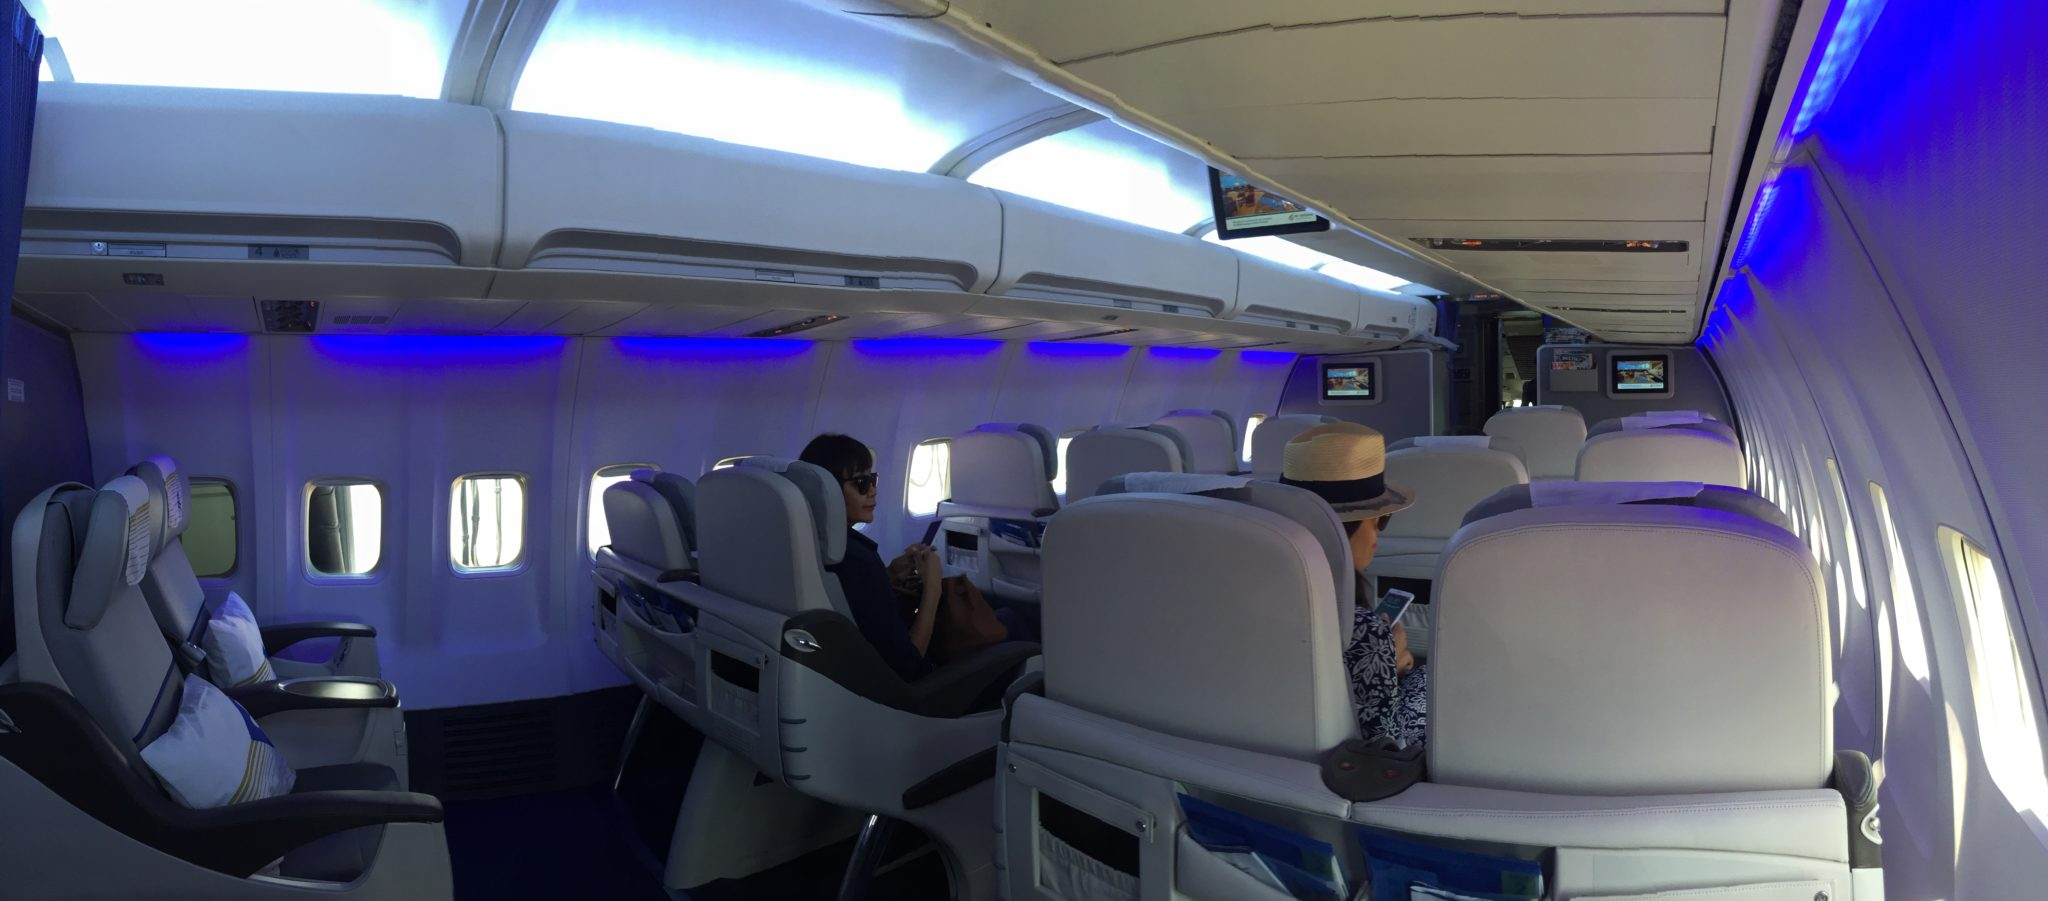 The sixteen-seater Business cabin stretches from doors 1 to 2 on Air Astana's 757-200. Image: Air Astana